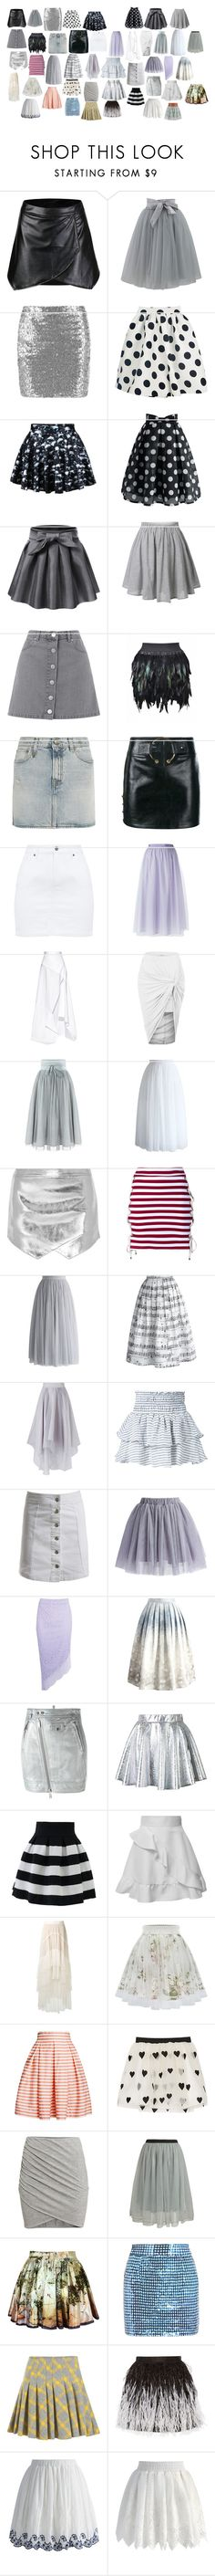 """Skirts 2"" by spellcasters ❤ liked on Polyvore featuring Chicwish, Miss Selfridge, R13, Anthony Vaccarello, RED Valentino, Michael Lo Sordo, Mason by Michelle Mason, House of Holland, Apiece Apart and Sans Souci"